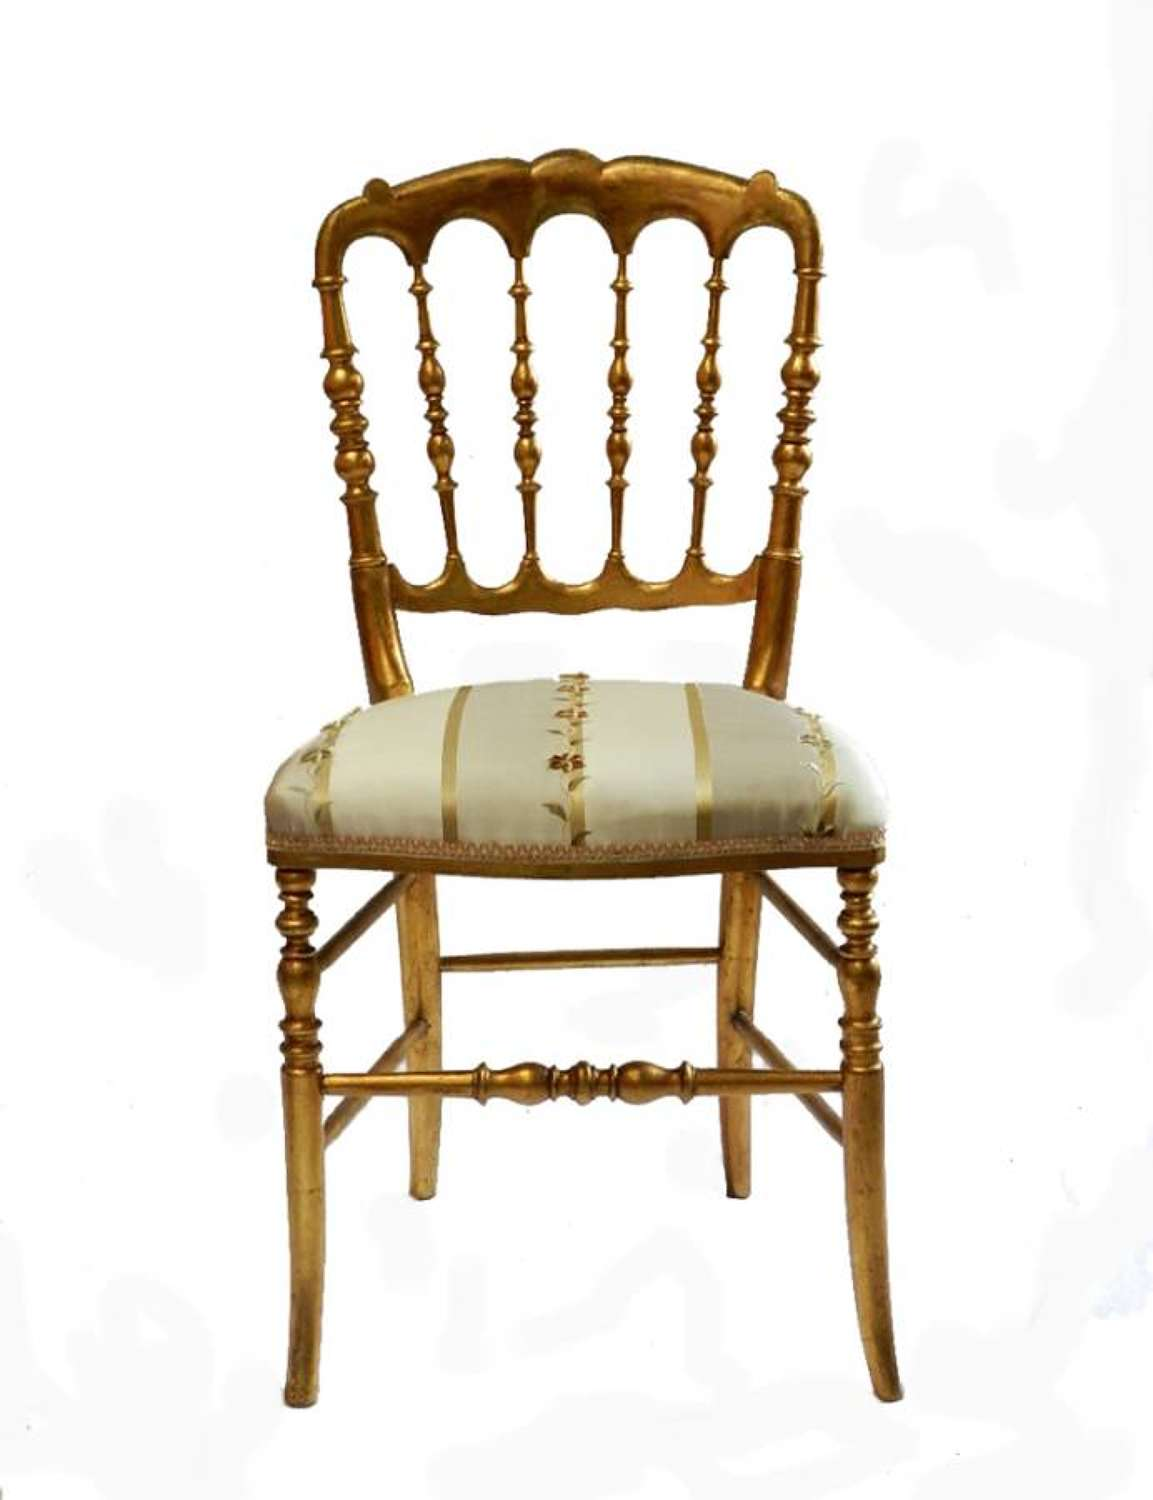 Early Original Italian Chiavari Chair turned wood Gold Side Chair Bedroom Accent